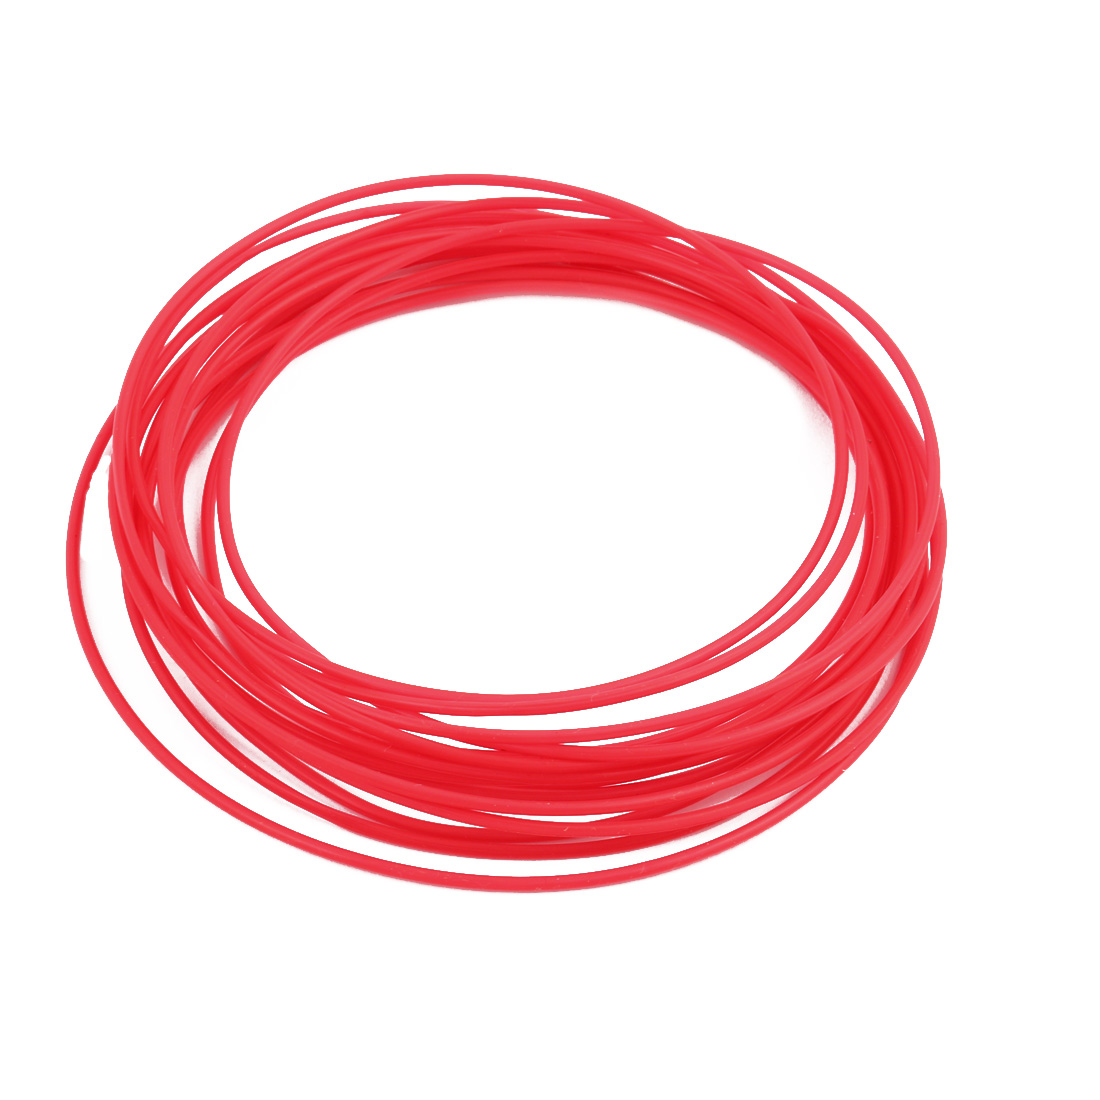 1.5mmx1.8mm PTFE Resistant High Temperature Red Tubing 5 Meters 16.4Ft